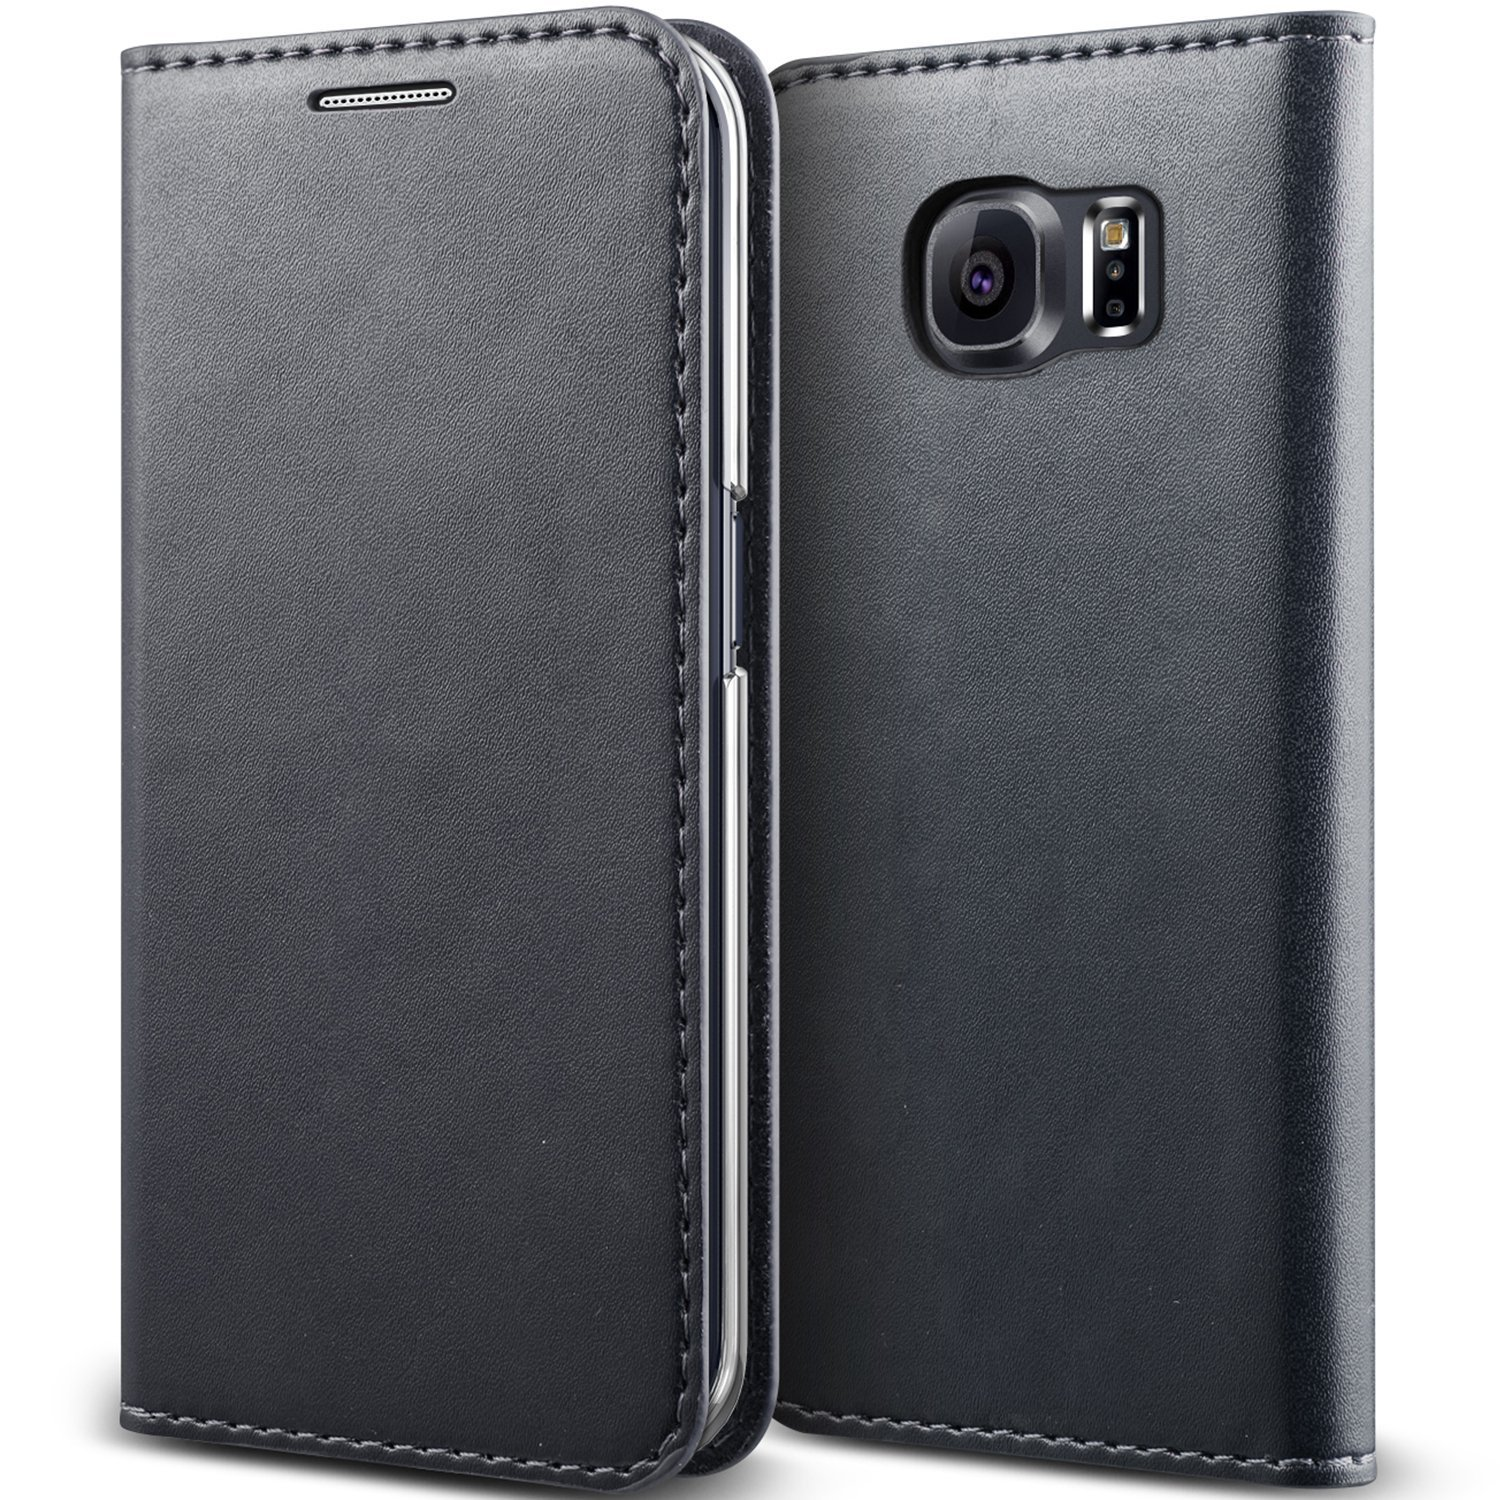 Galaxy S6 Edge Case, Verus [Crayon Diary][Warm Gray] - [Leather Wallet][Kickstand][Slim Fit] For Samsung Galaxy S6 Edge